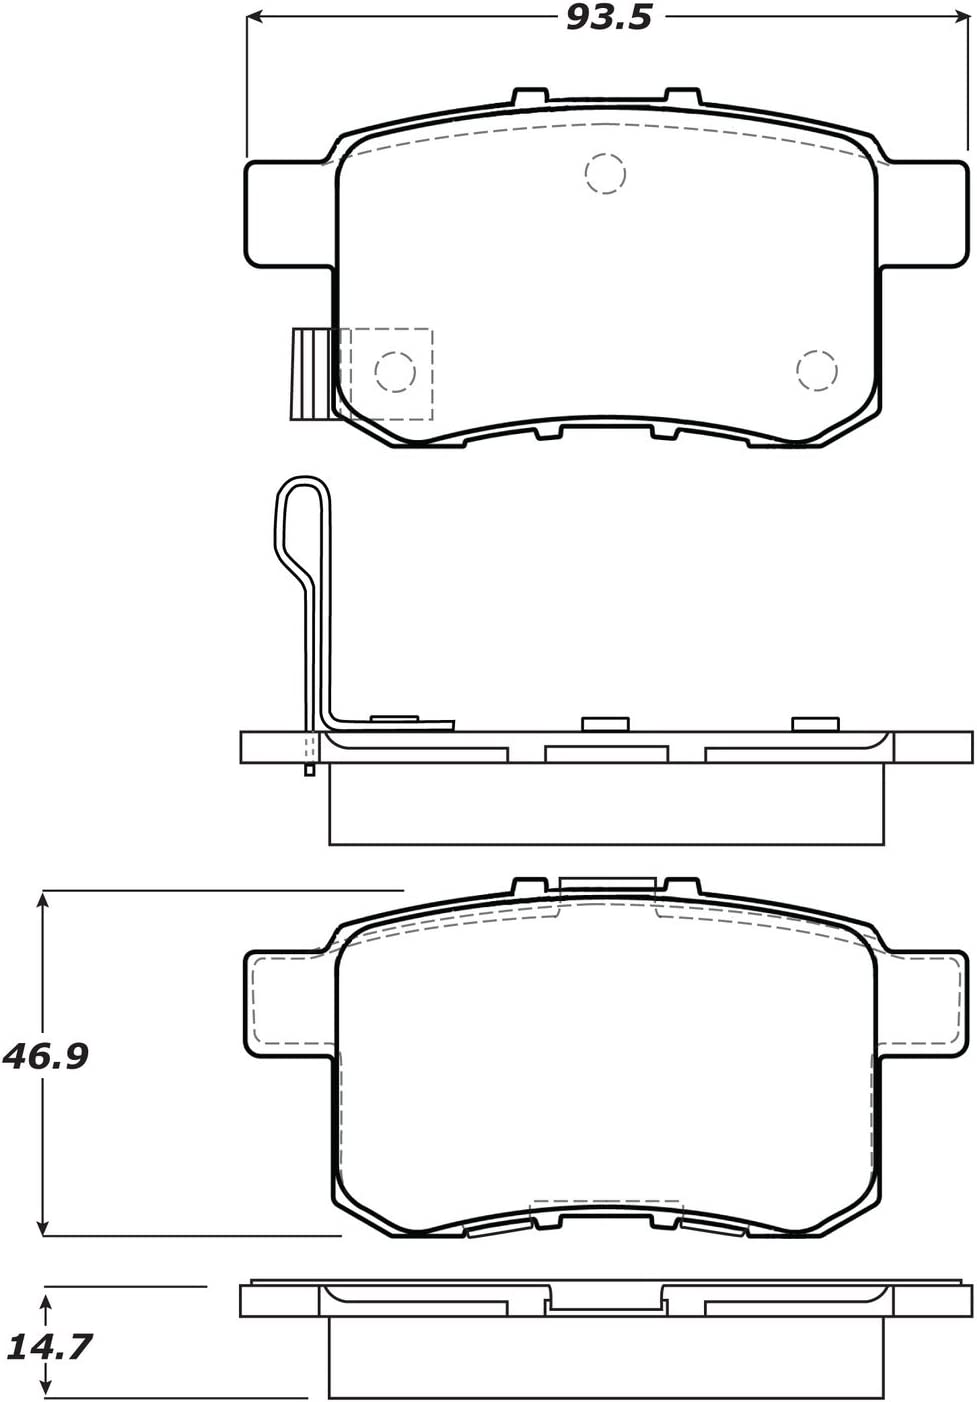 StopTech 308.13360 Street Brake Pads 5 Pack